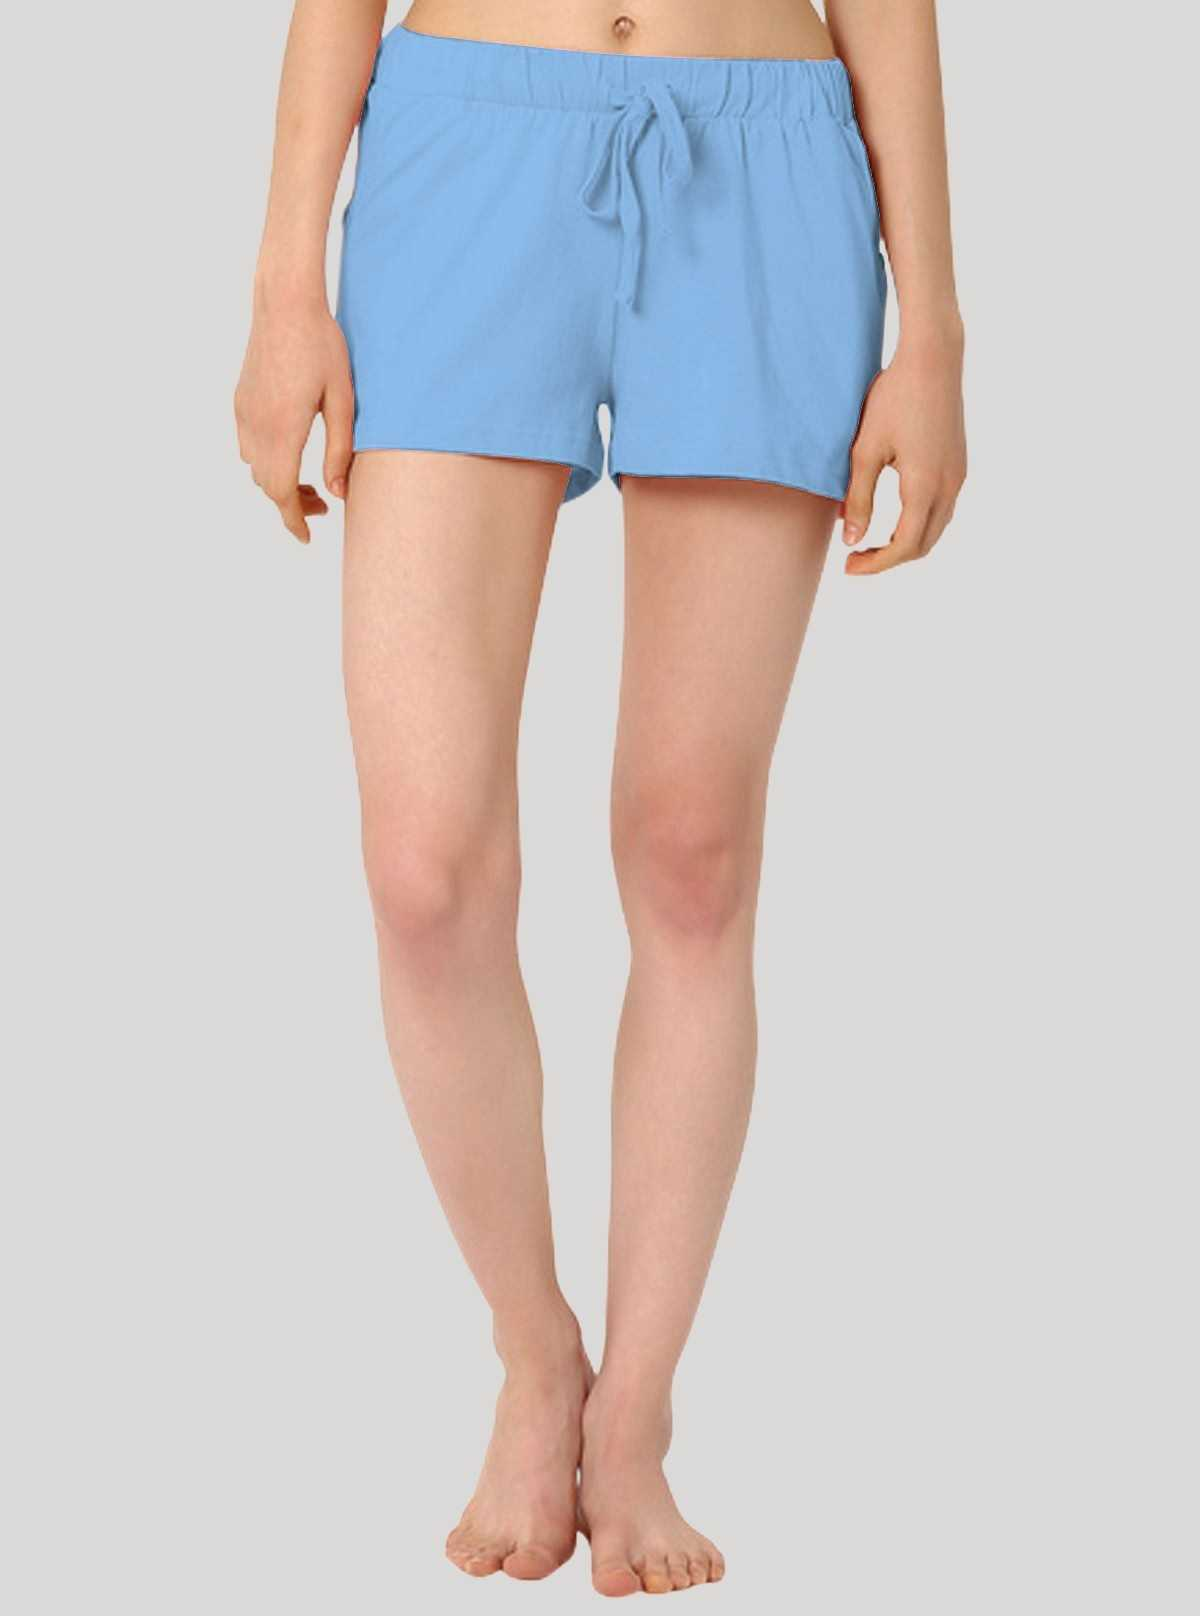 Light Blue Womens Shorts Boer and Fitch - 1